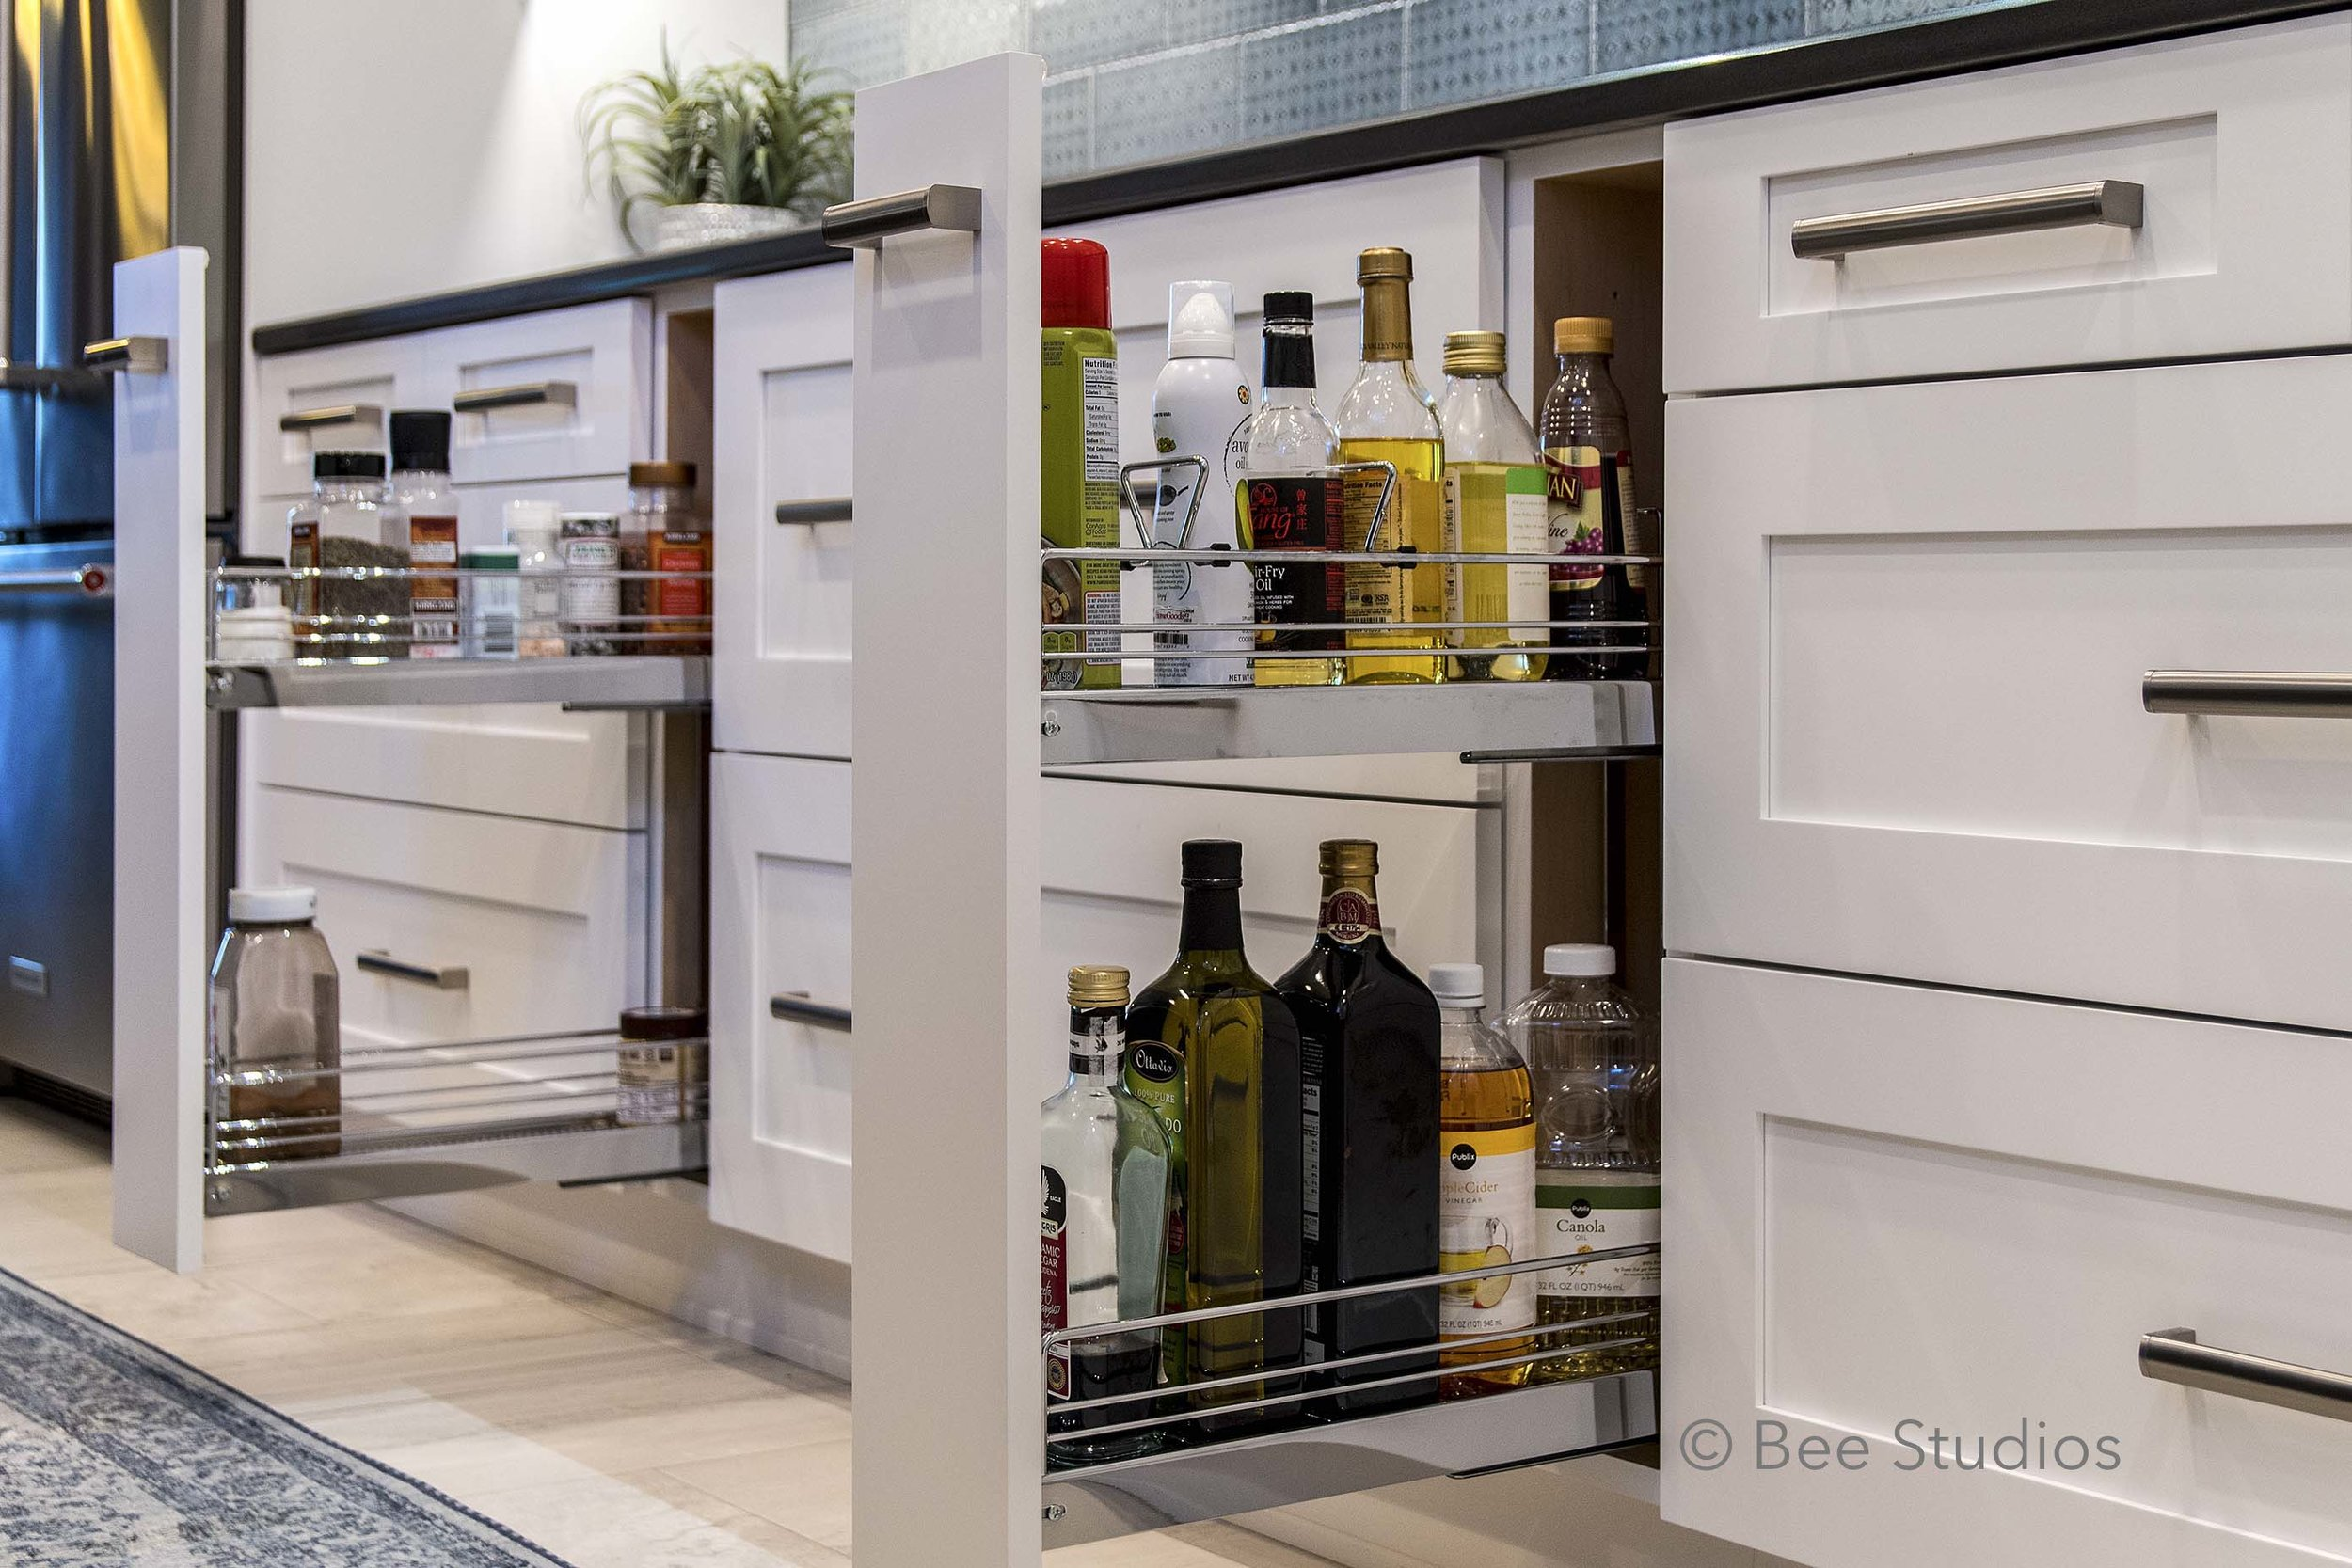 Pullout storage for spices and cooking oils